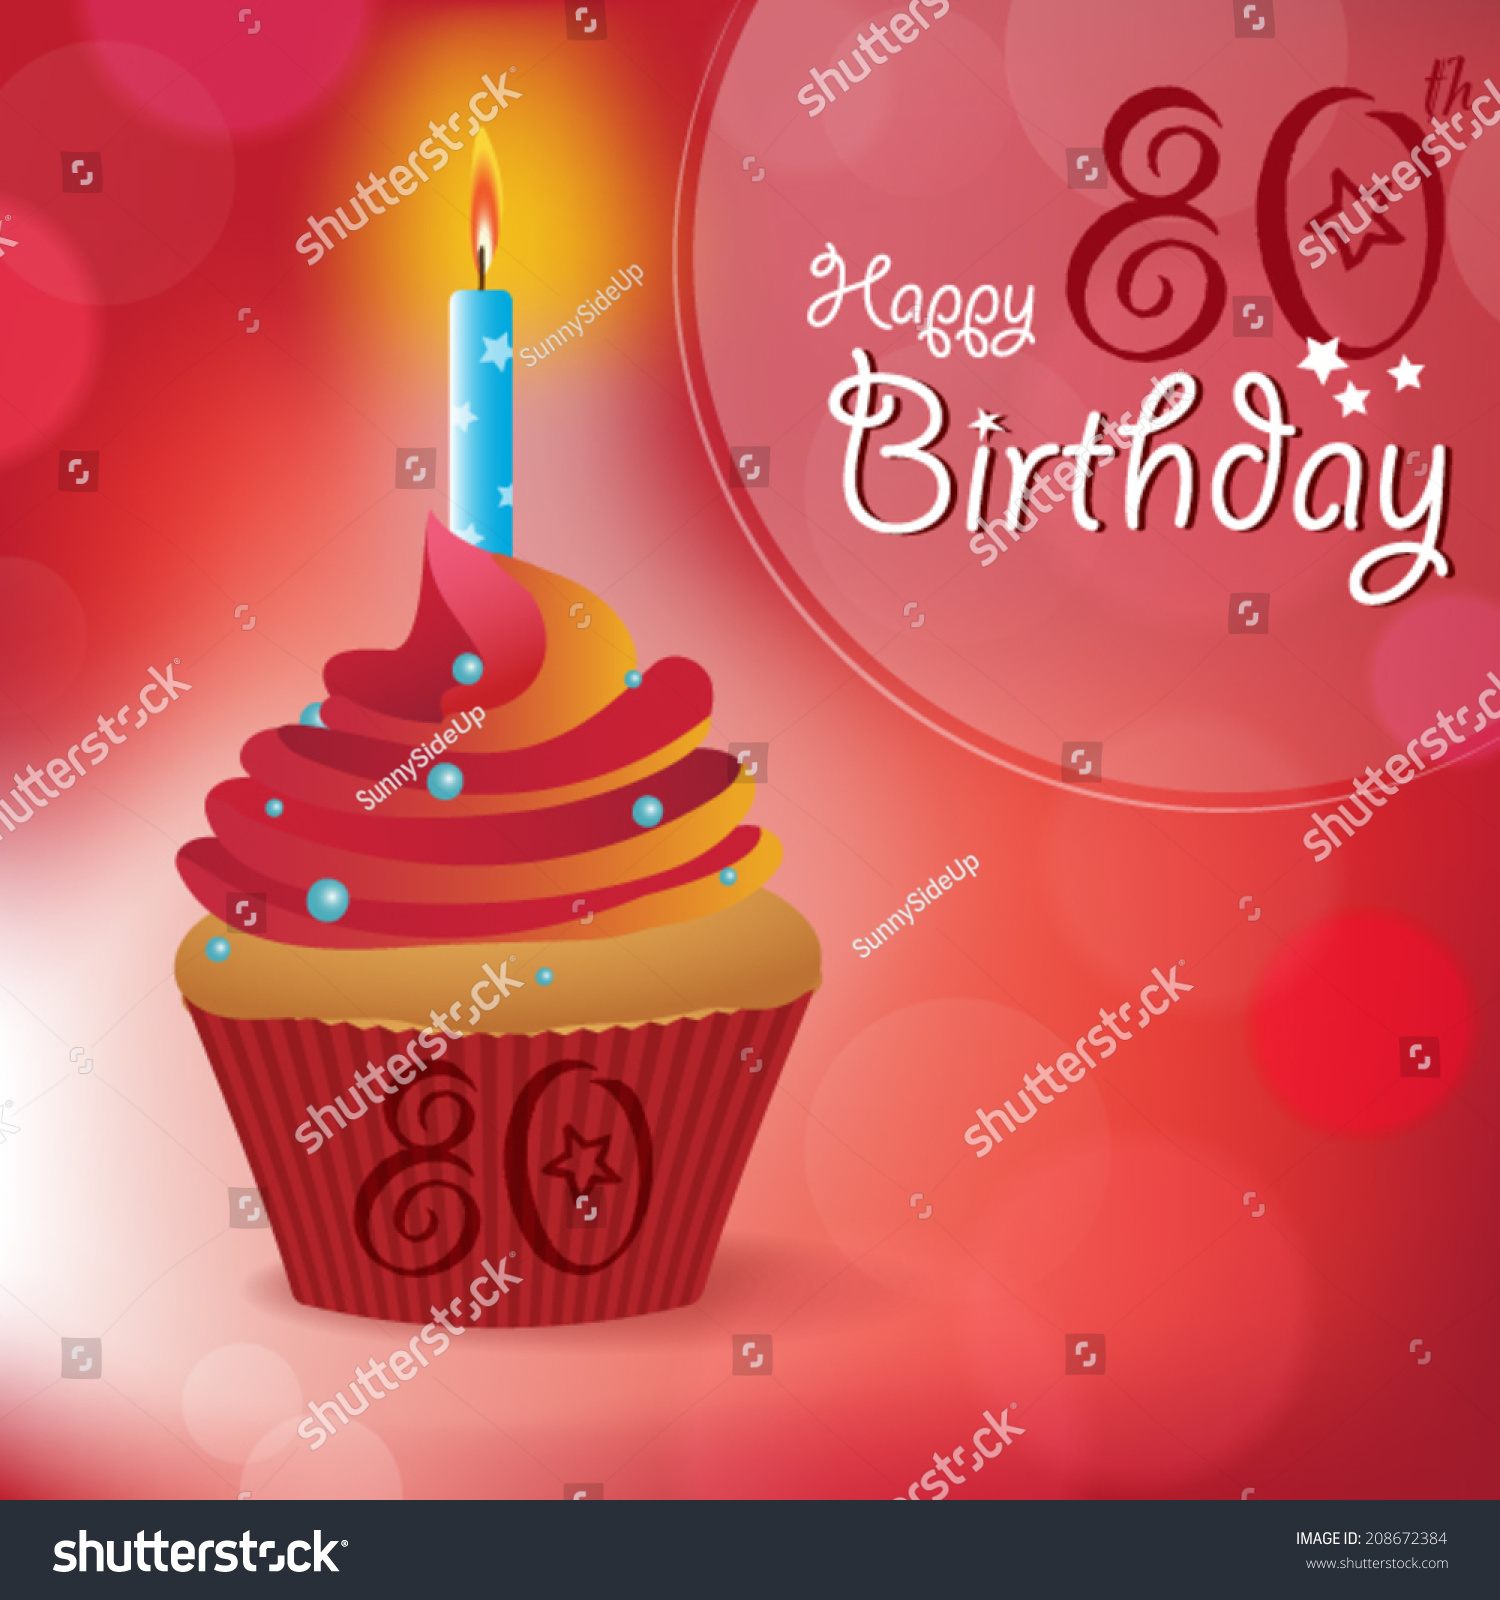 Royalty Free Happy 80th Birthday Greeting 208672384 Stock Photo